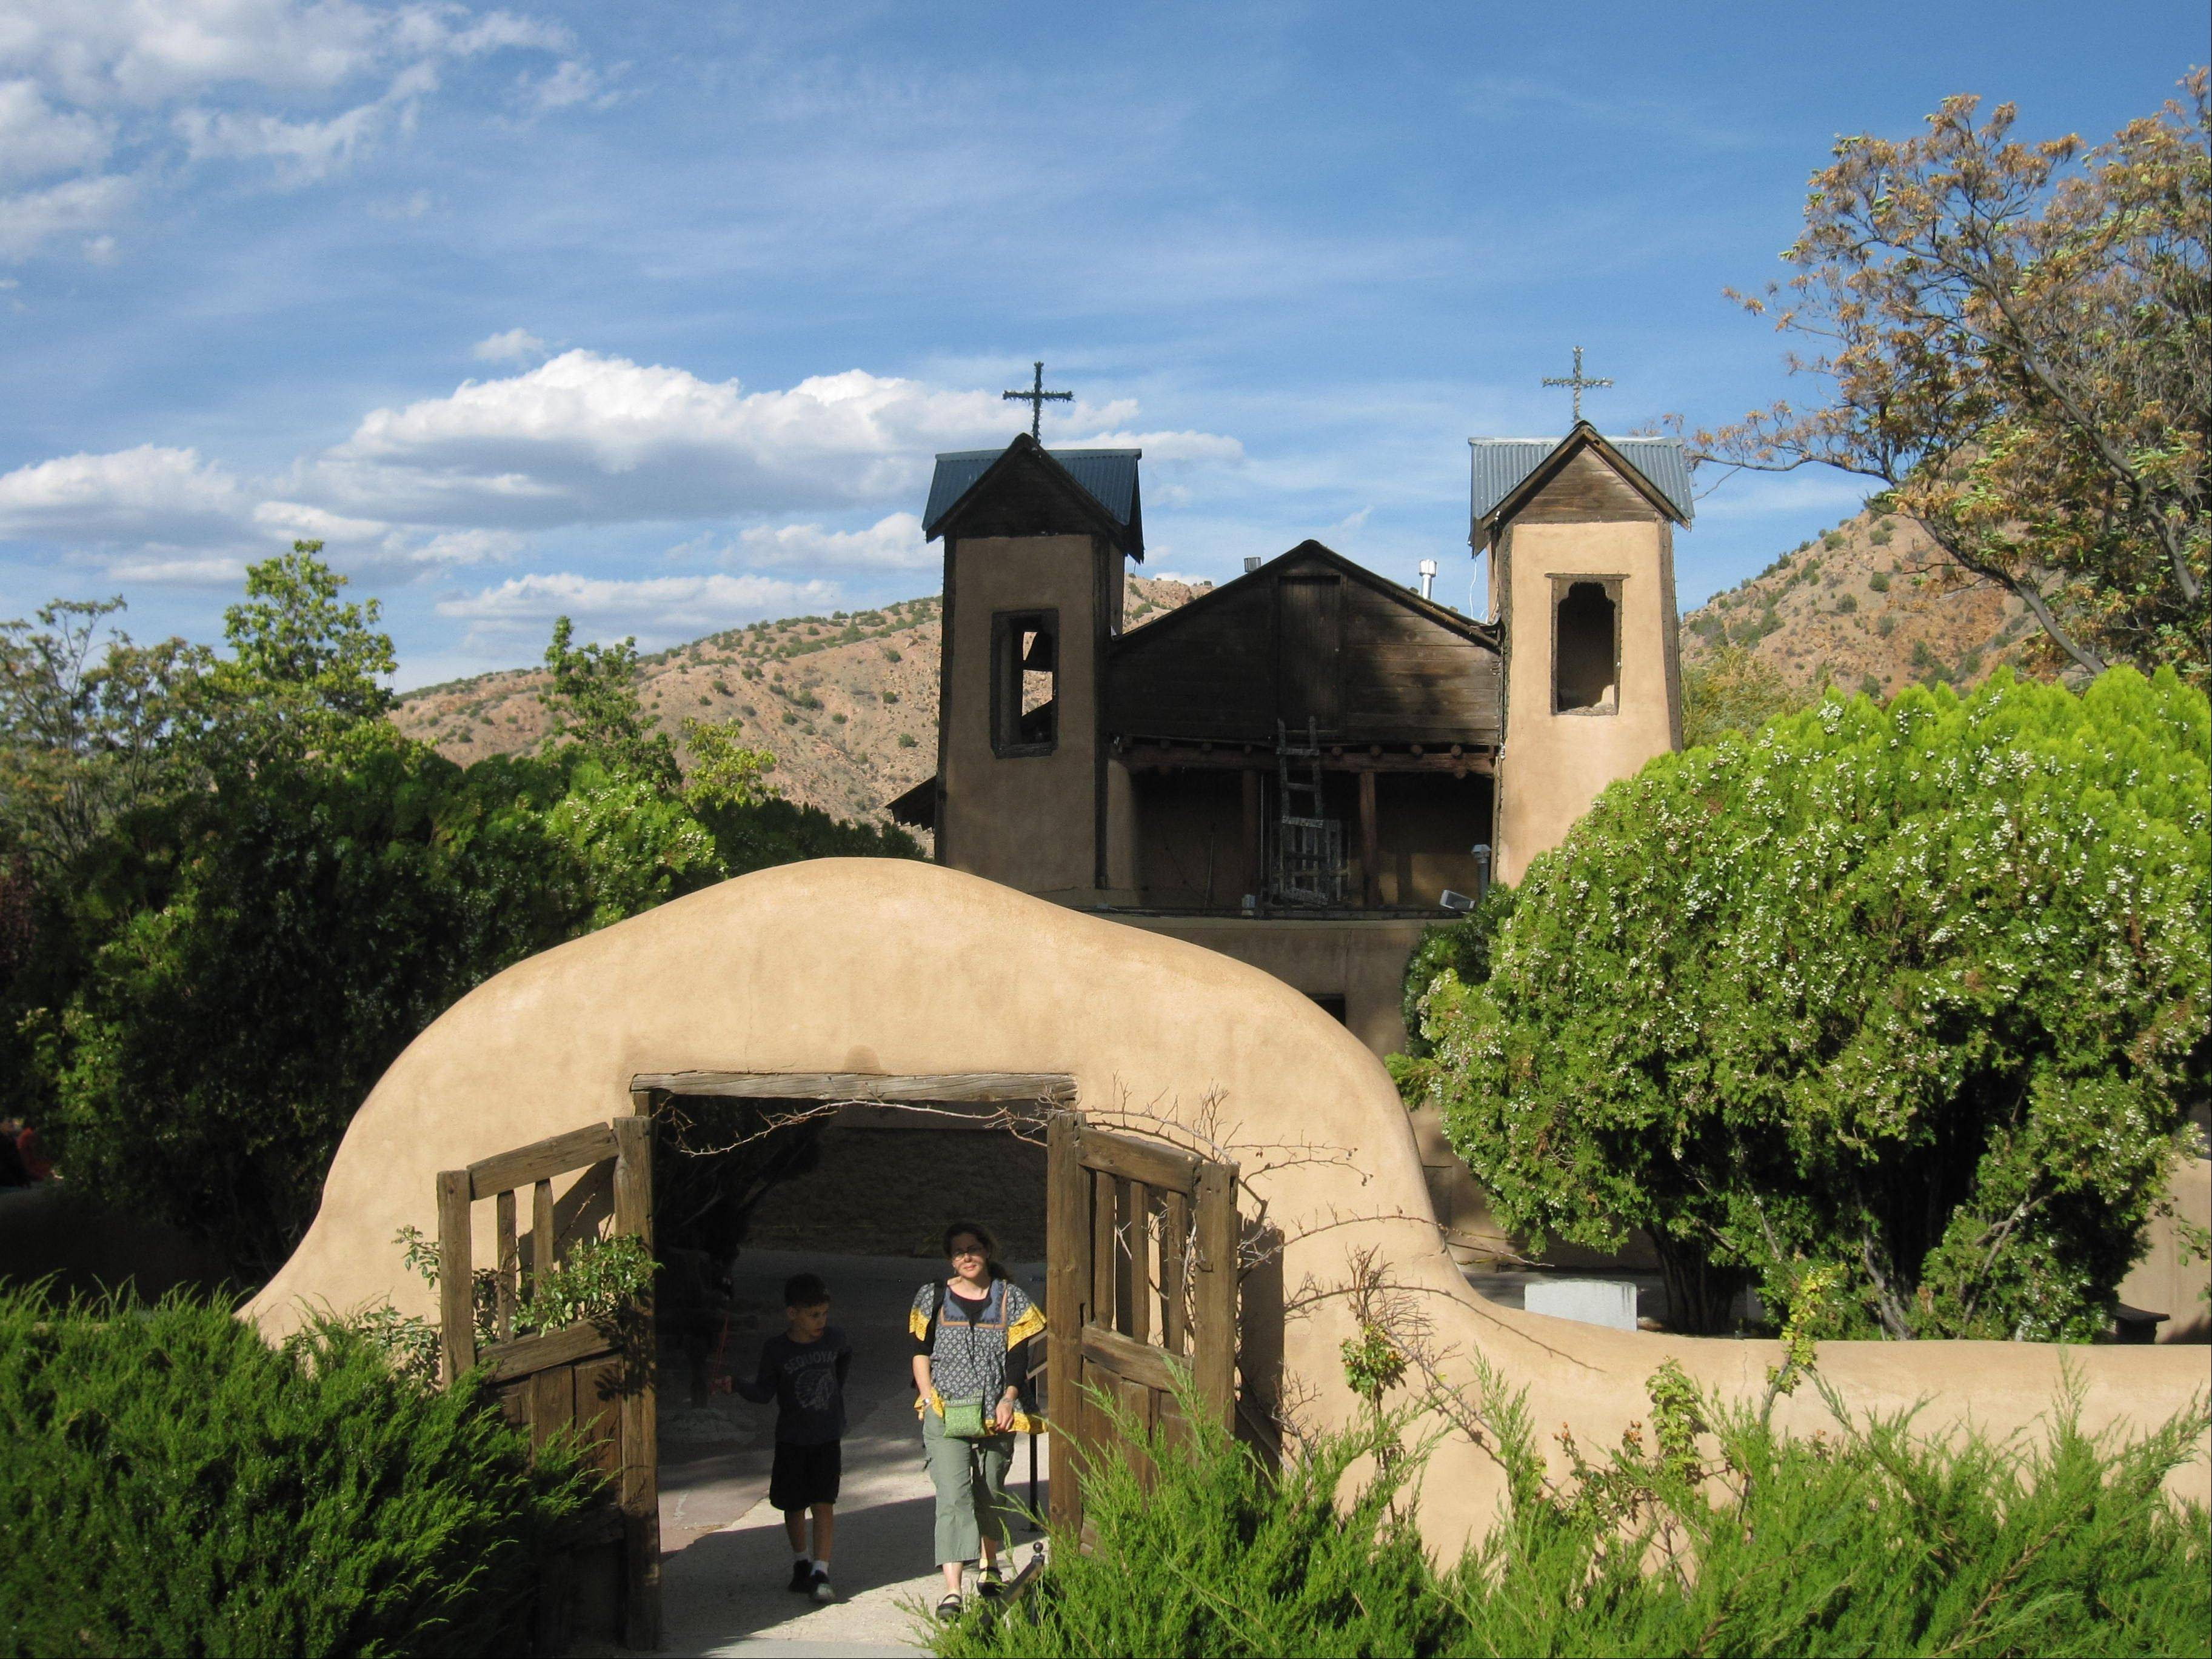 The Santuario de Chimayo, a 200-year-old National Historic Landmark, attracts 200,000 visitors a year, many of whom seek cures and miracles from a well of holy dirt.